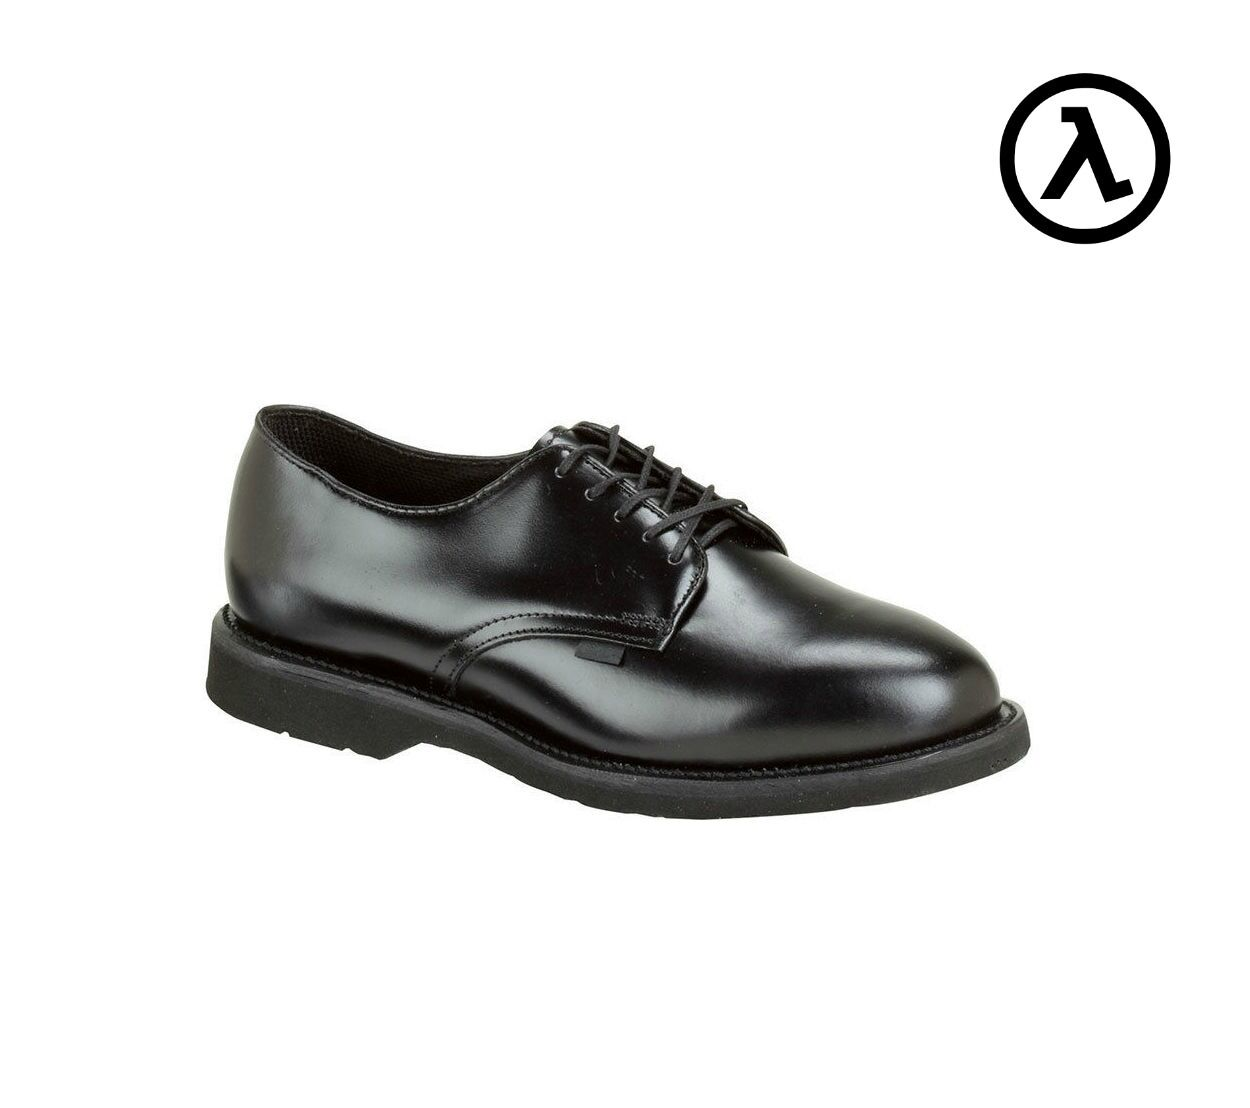 THgoldGOOD UNIFORM USA MADE CLASSIC LEATHER OXFORD SHOES 834-6027 - ALL SIZES